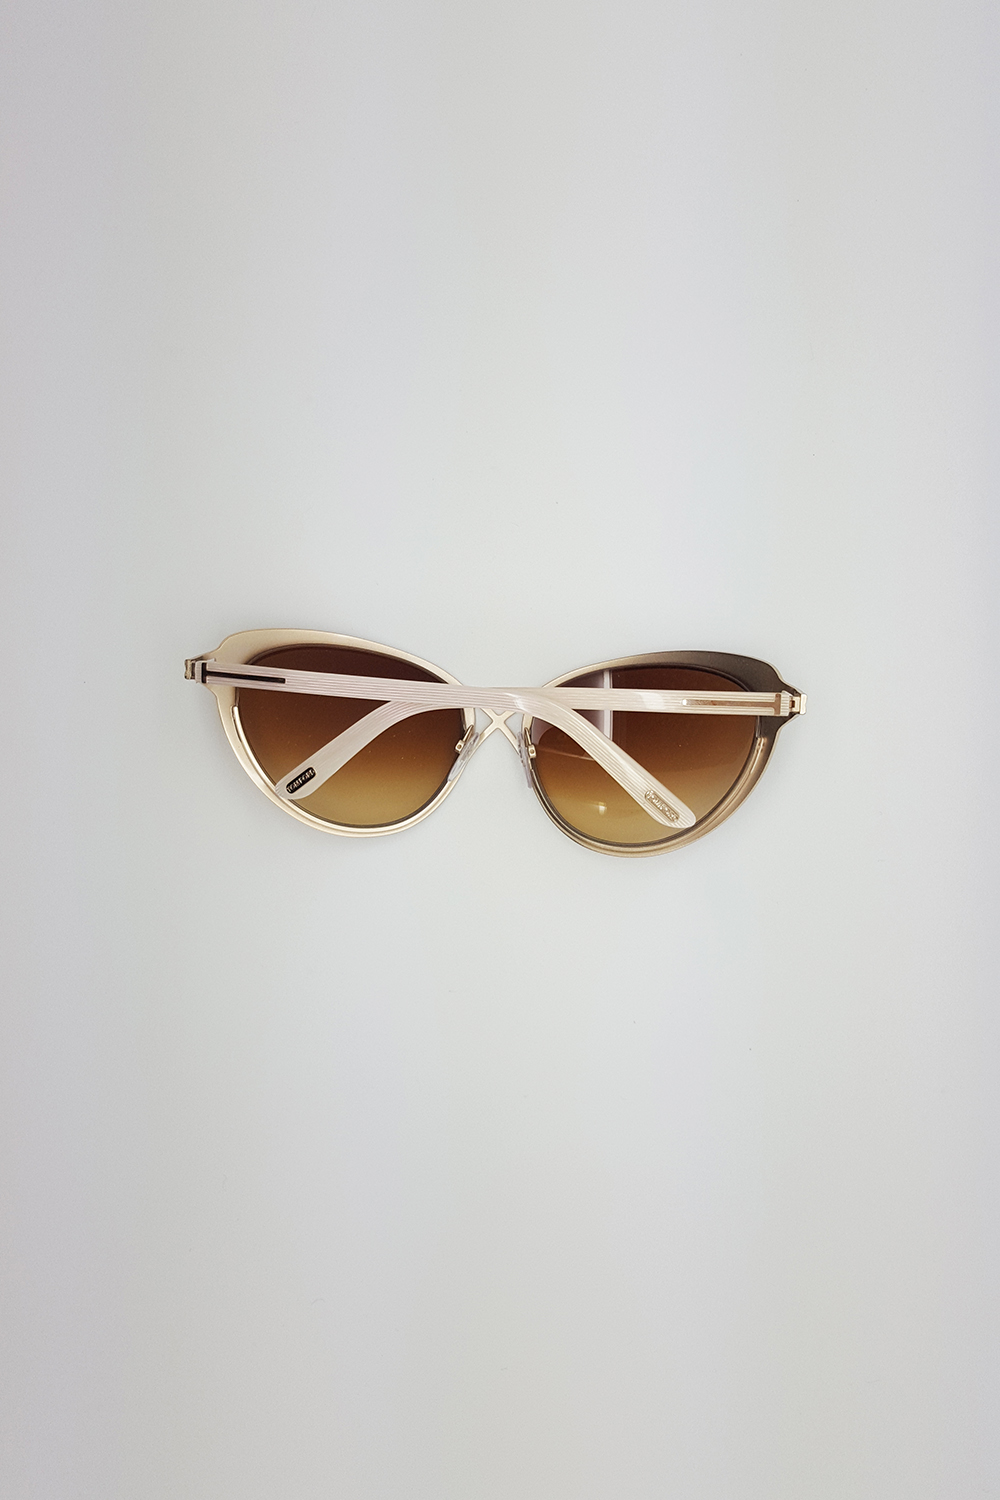 fc5bdc4712 TOM FORD  DARIA CROSSOVER CATS EYE CREAM BROWN SUNGLASSES TF 321 32F ...